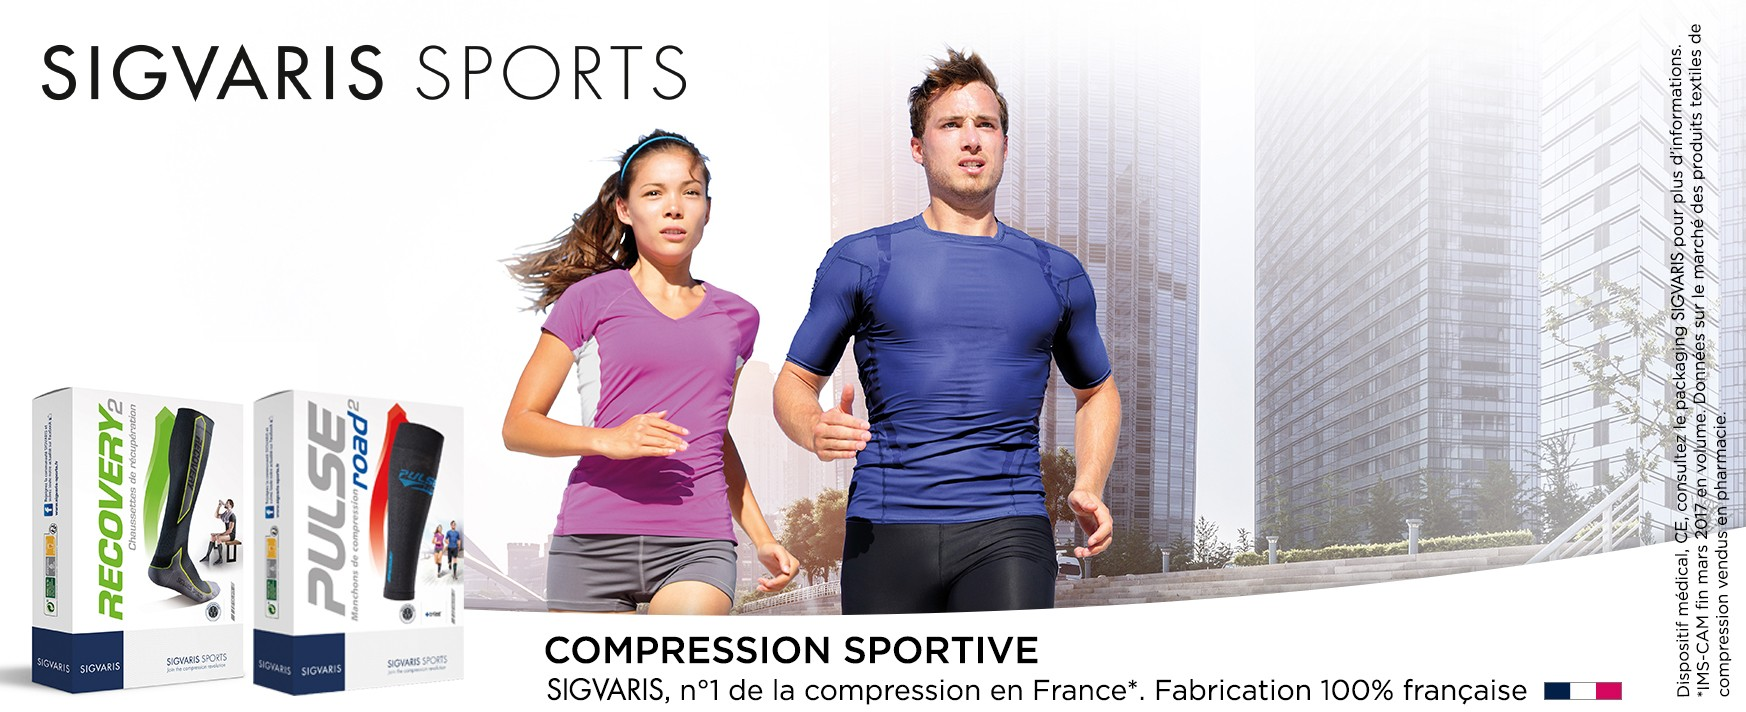 Sigvaris Sports - Compression Sportive - Numéro 1 de la compression en France